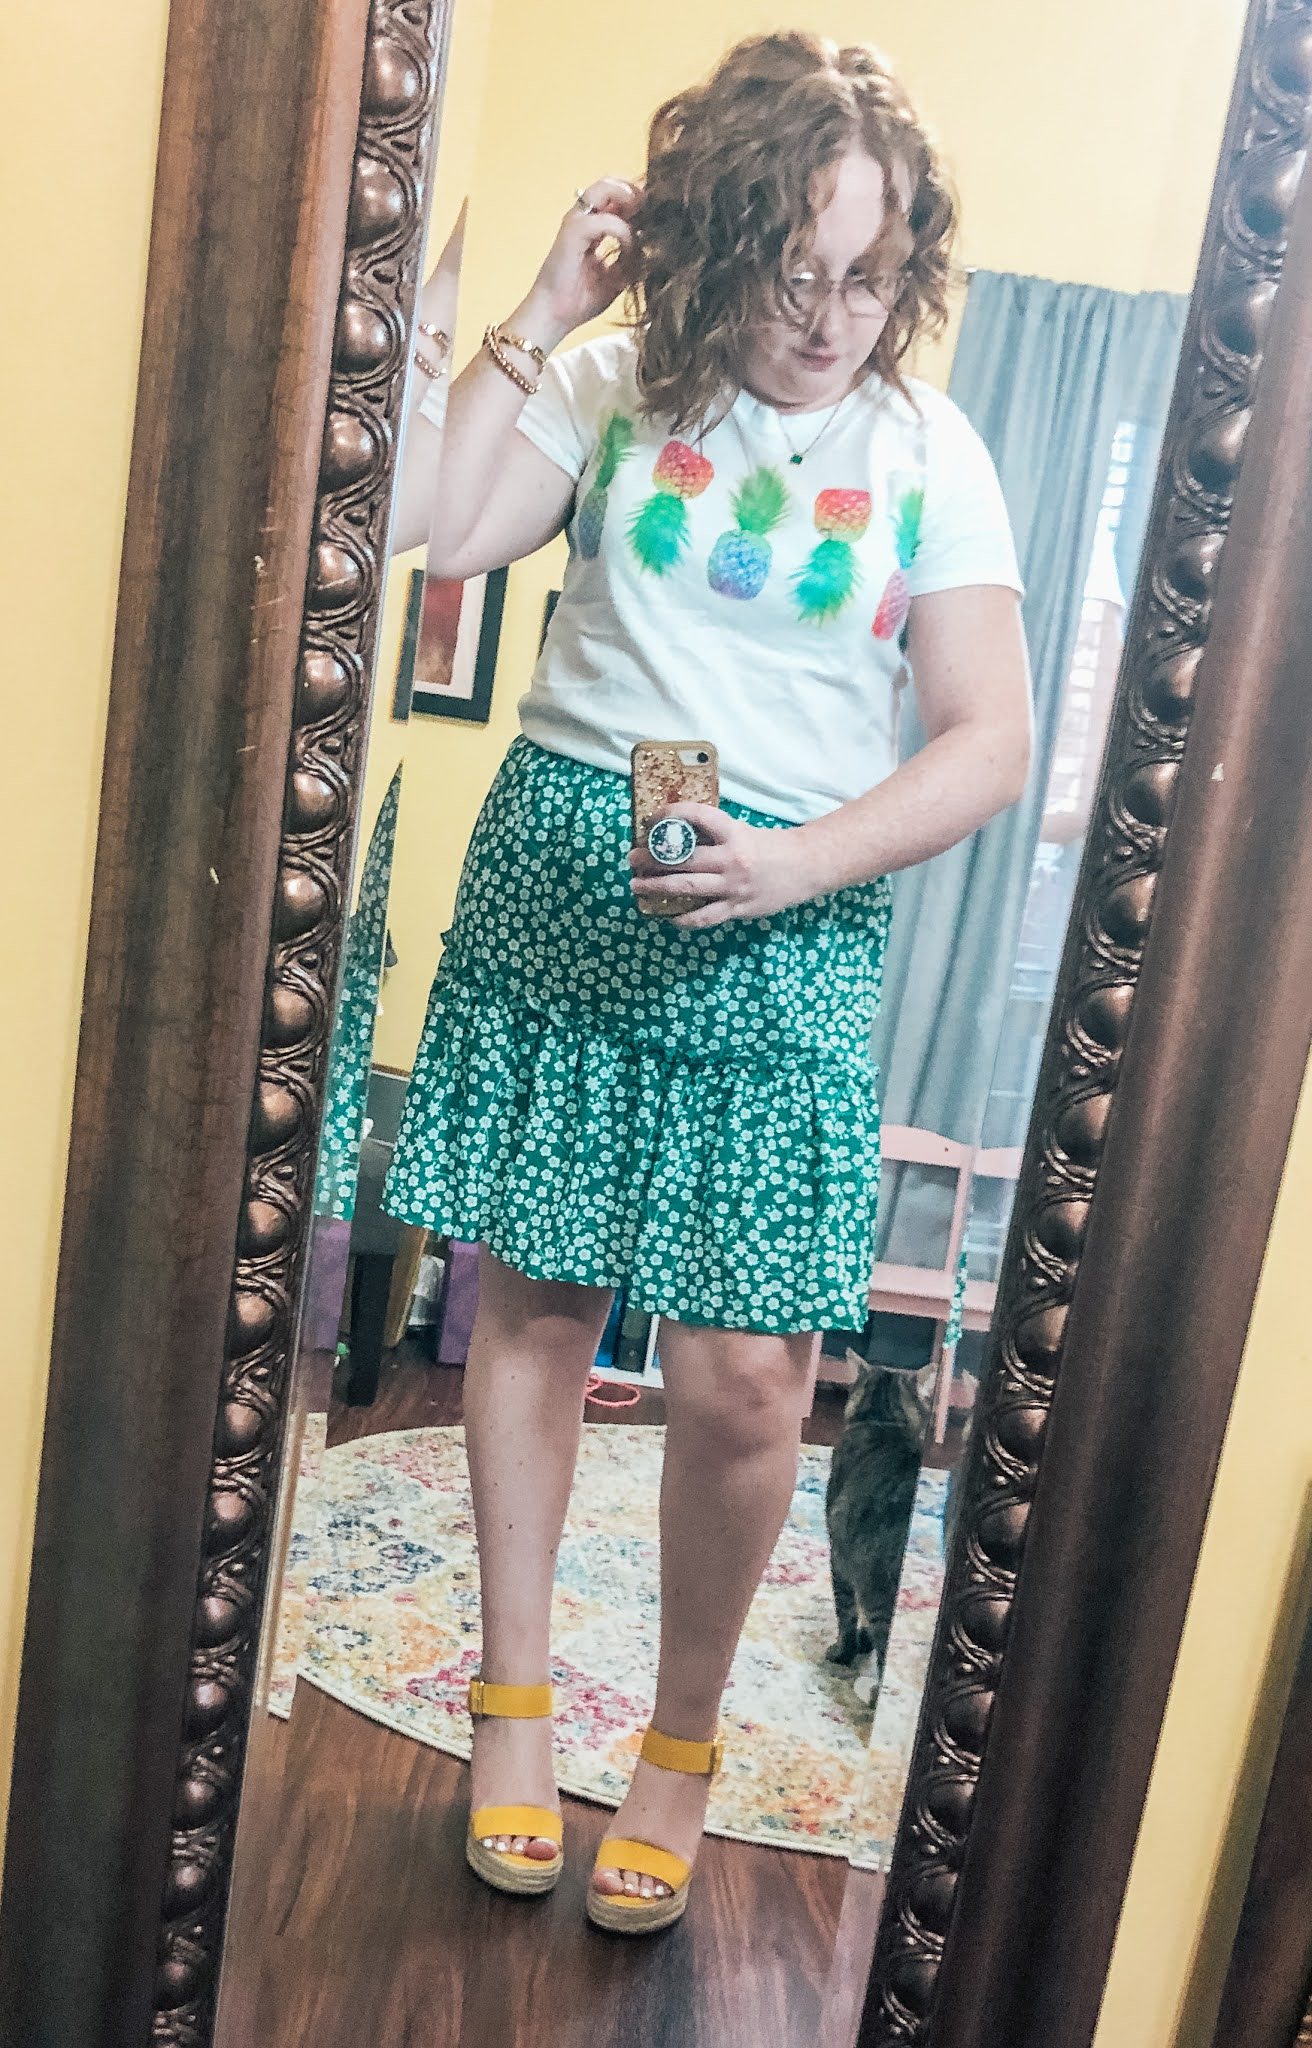 pineapple-tshirt-green-floral-skirt-yellow-wedges